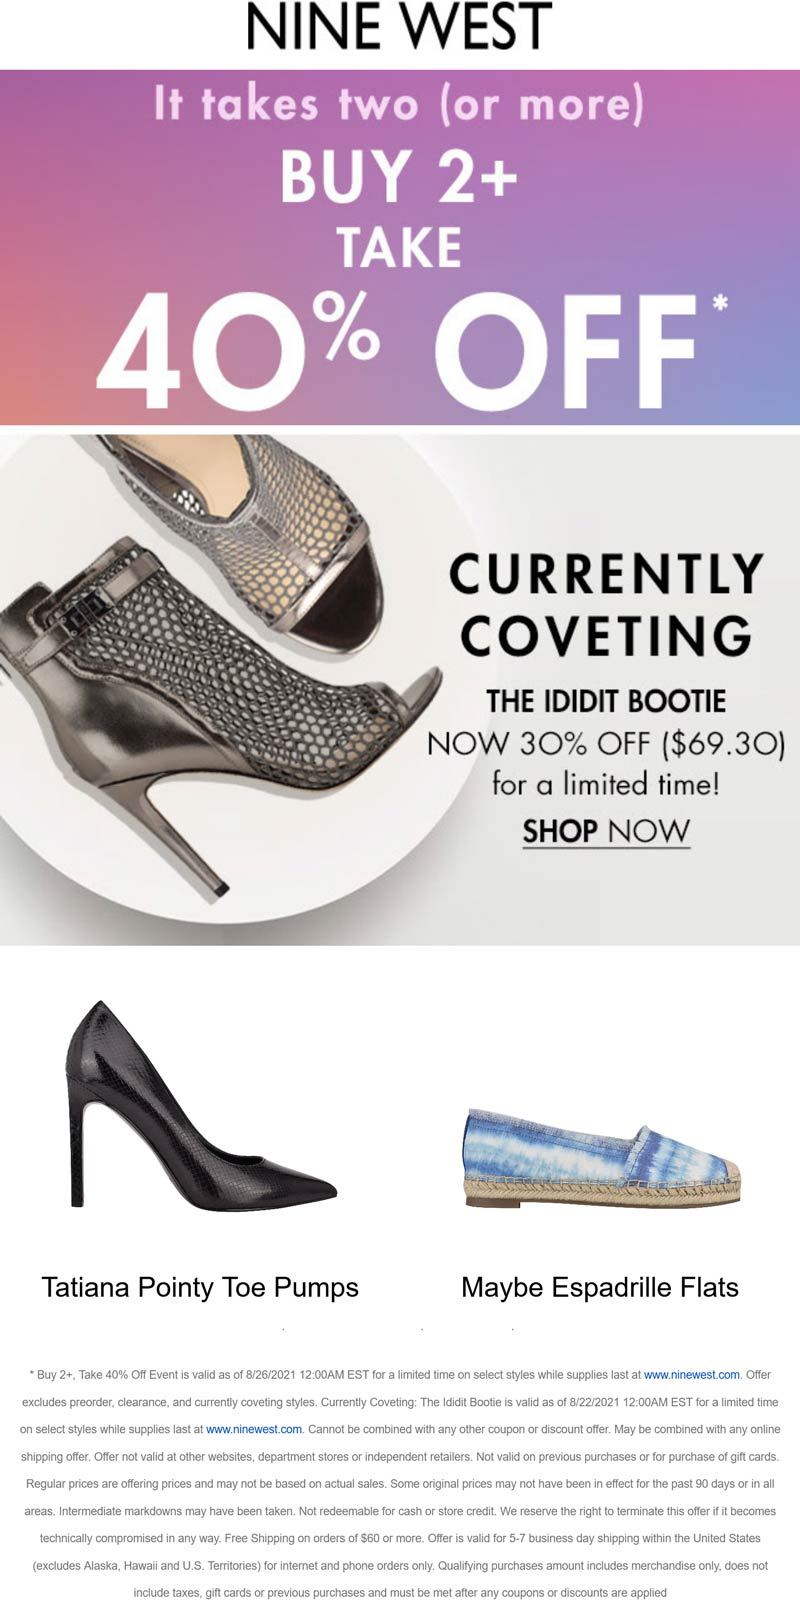 Nine West stores Coupon  40% off 2+ pair shoes at Nine West #ninewest